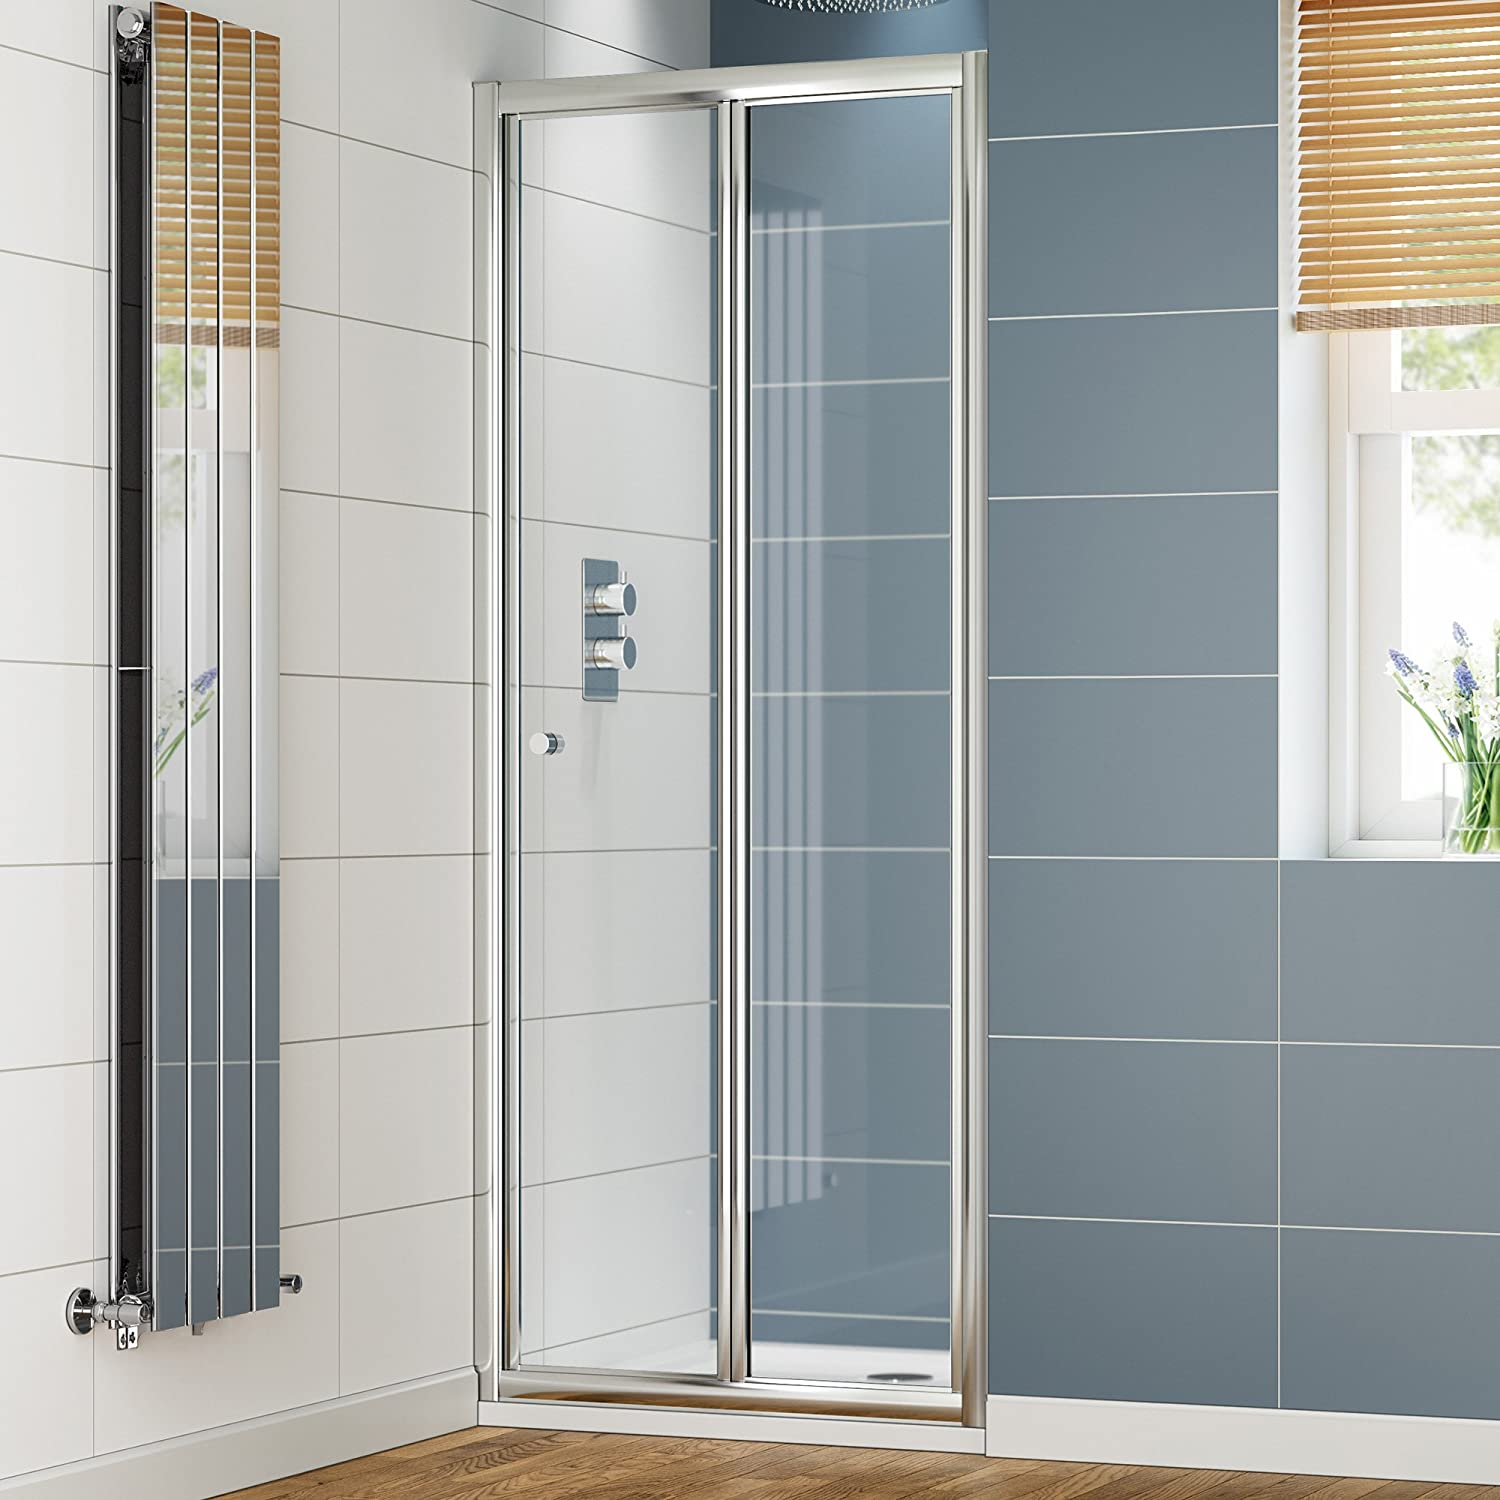 iBathUK 900 x 900 Bifold Glass Shower Enclosure Reversible Folding ...